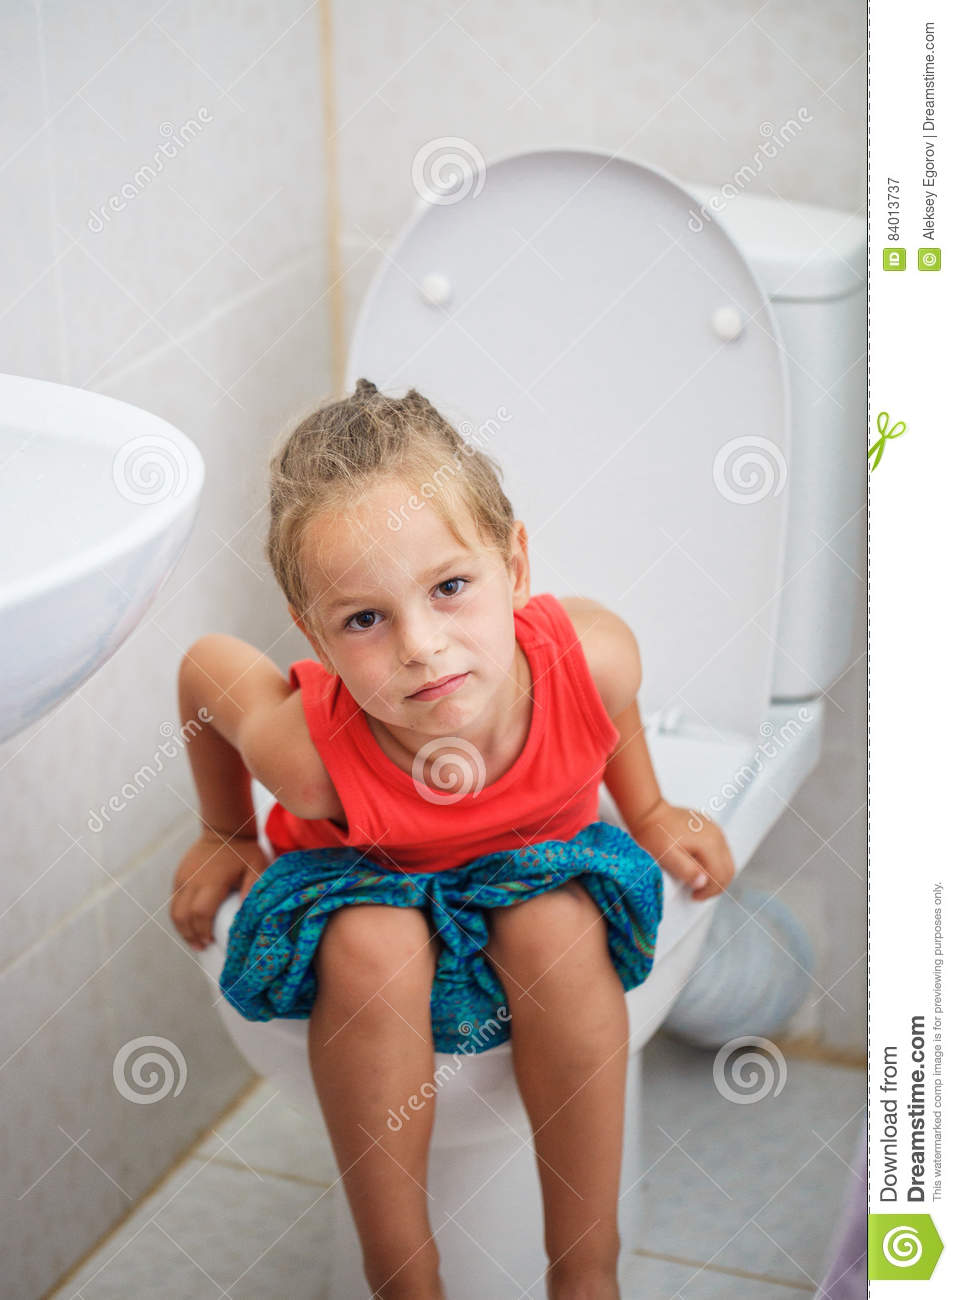 Child With Digital Tablet On Toilet Stock Image - Image of